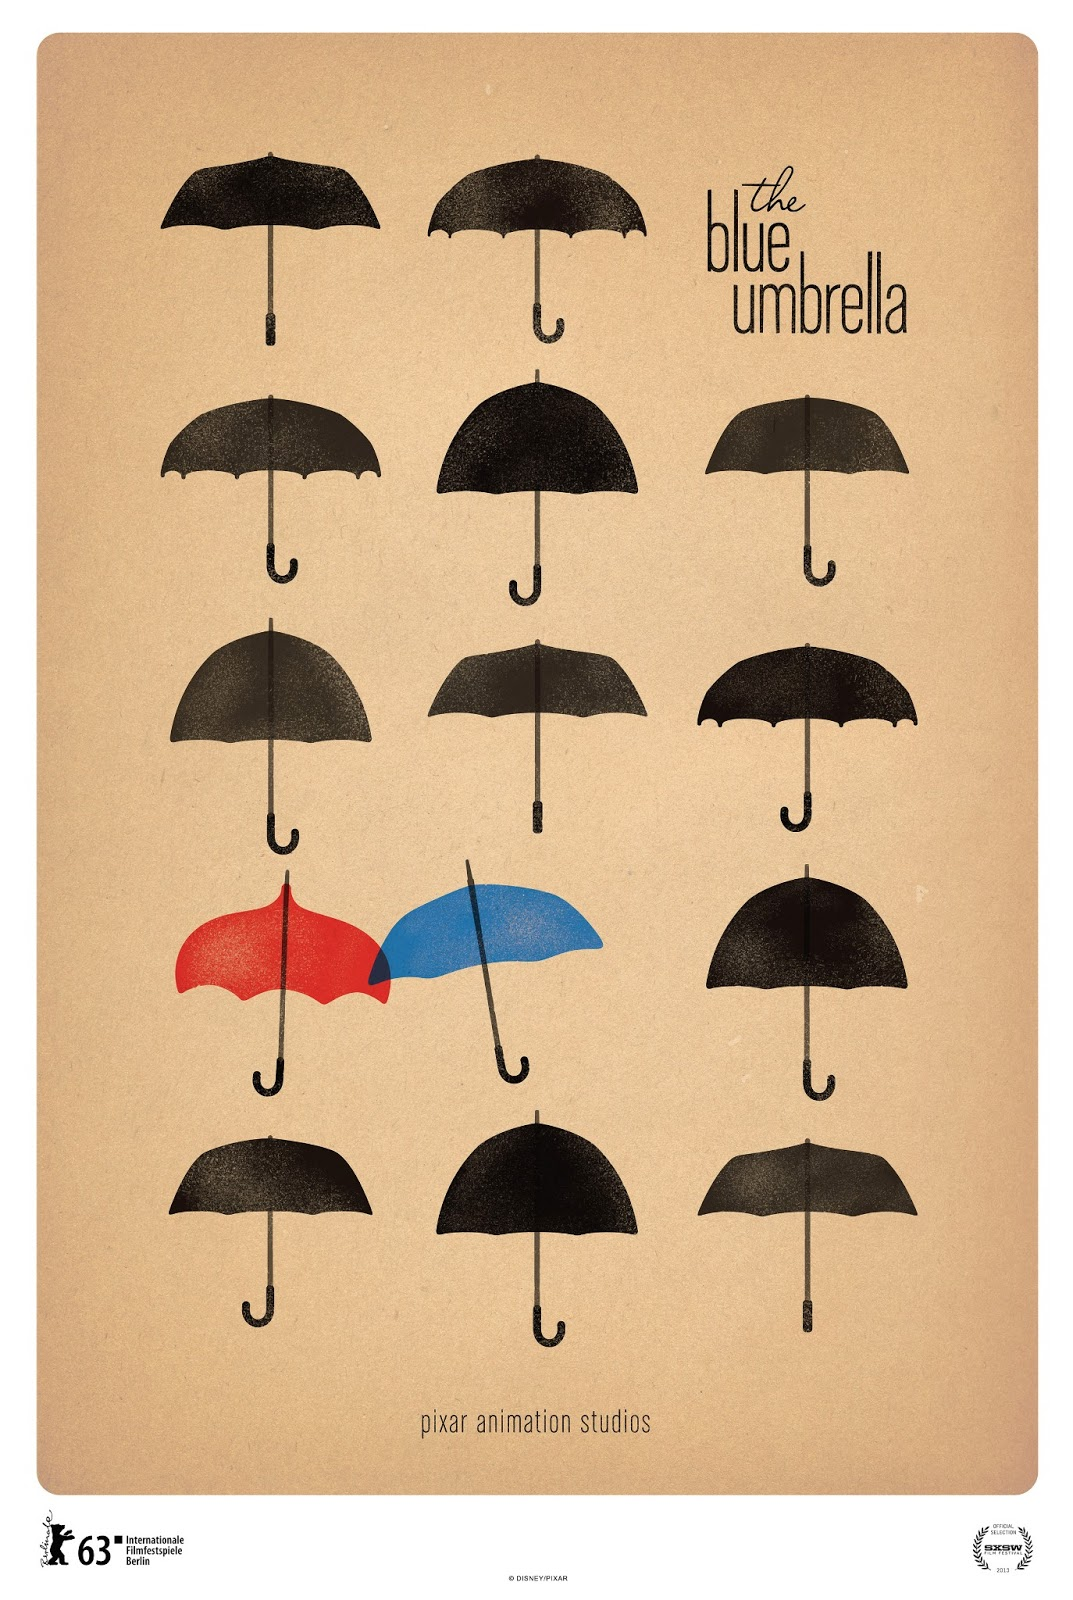 Pixar disney affiche poster le parapluie bleu the blue umbrella